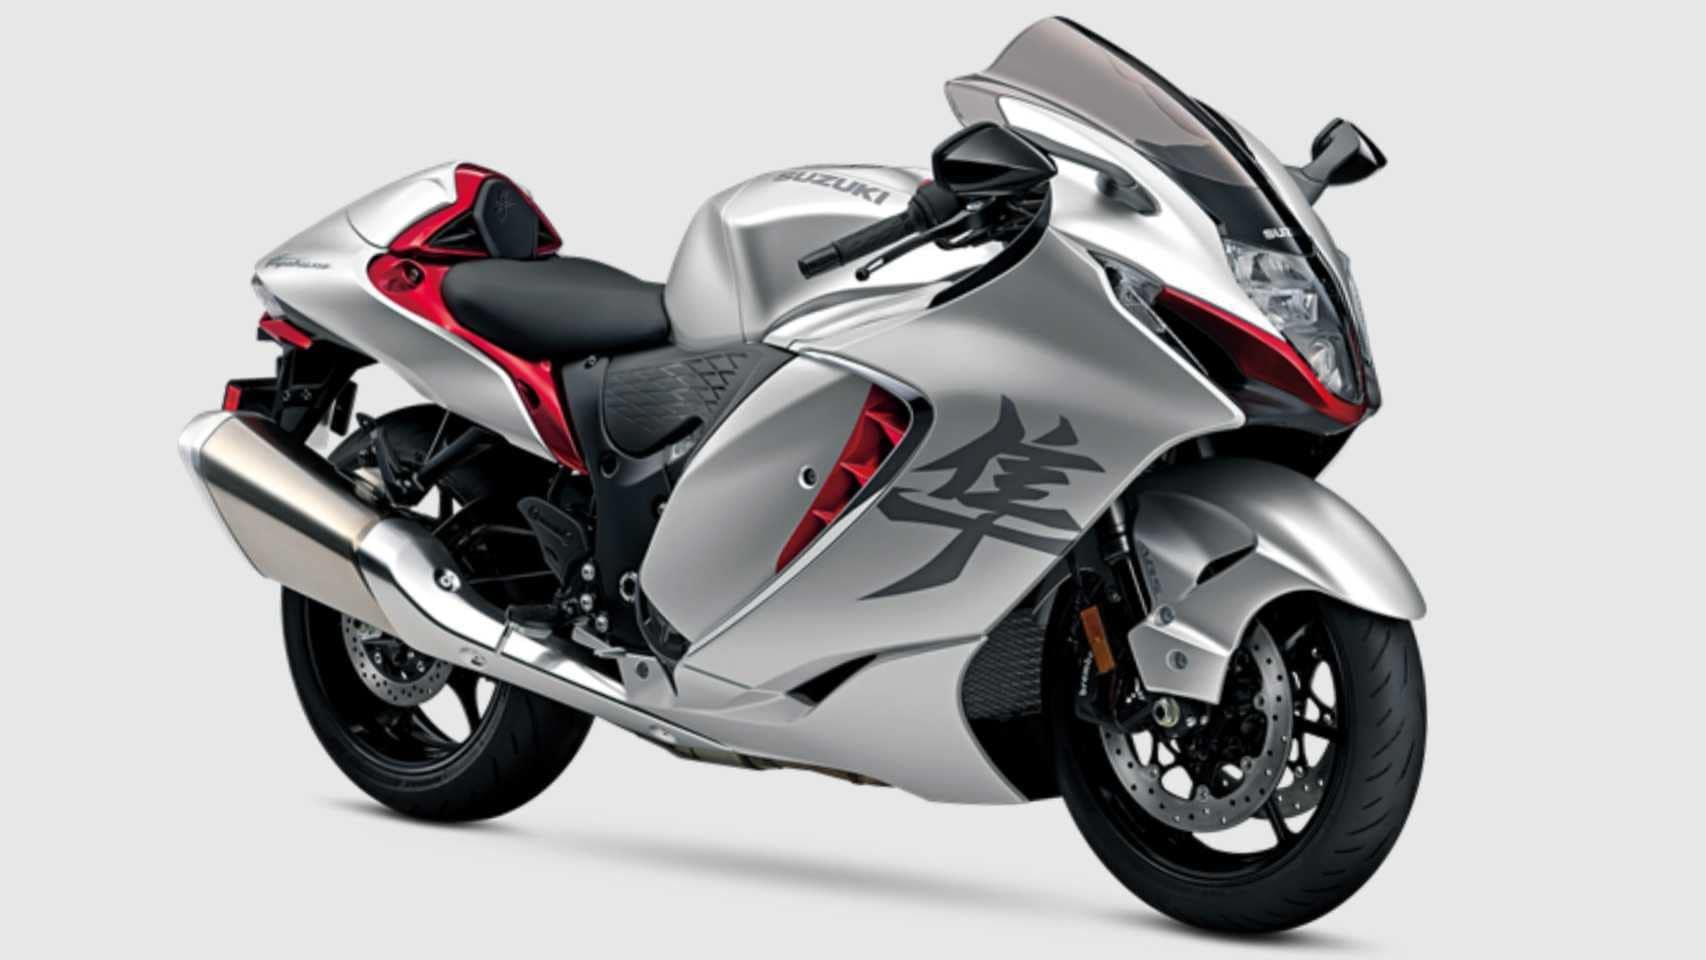 New Suzuki Hayabusa India launch on 26 April, to be brought in via the CKD route- Technology News, Gadgetclock